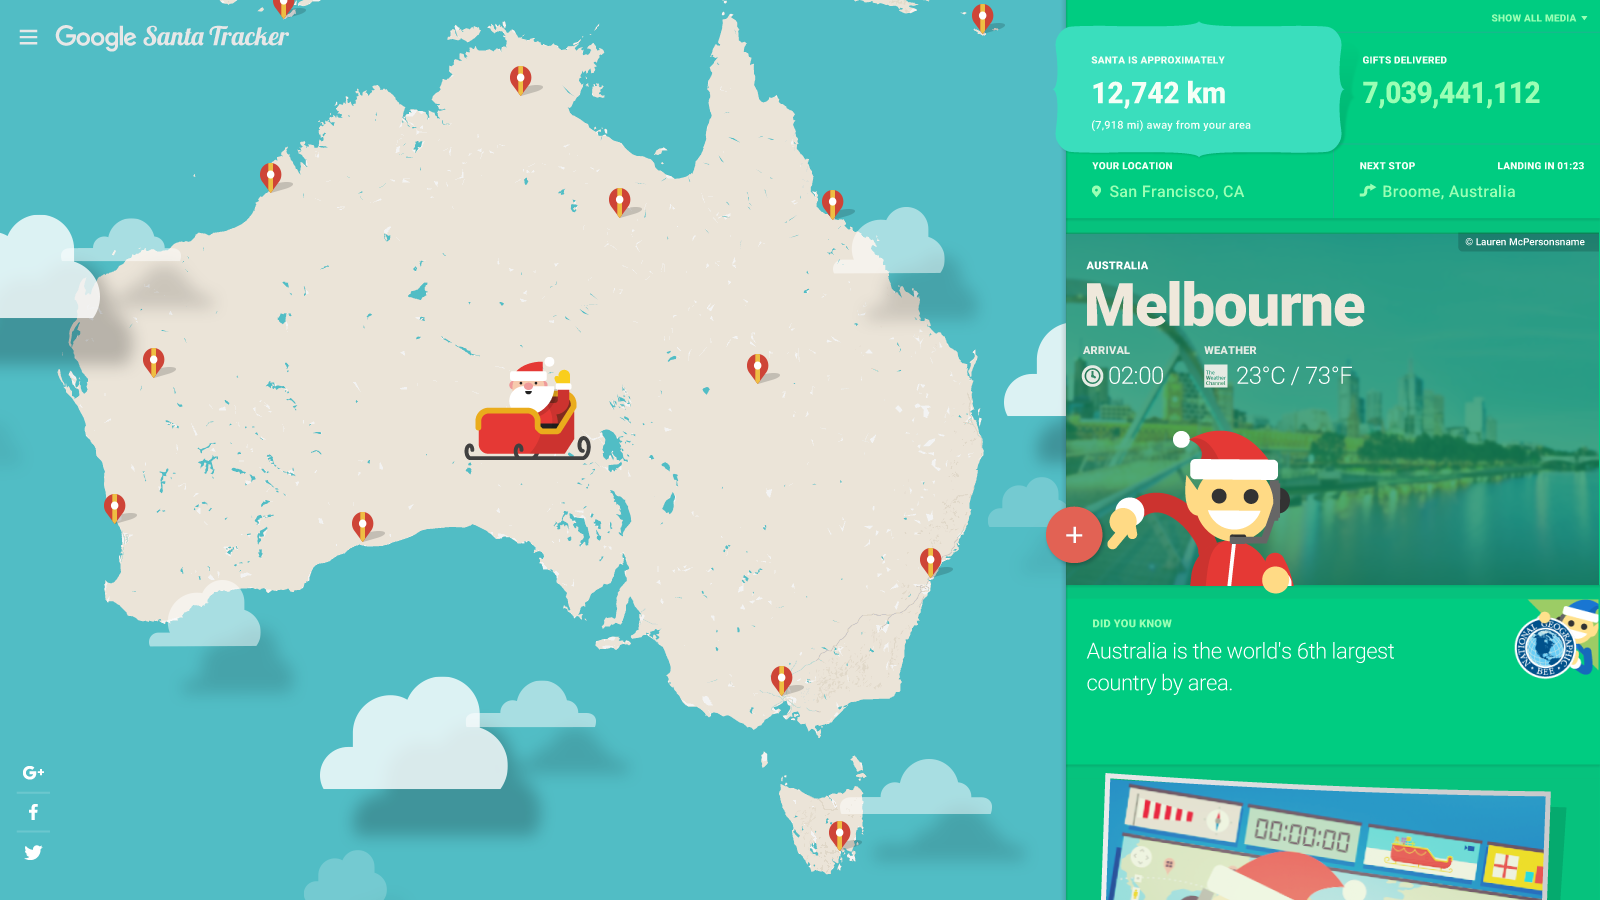 Where in the World Is Santa Claus Already? Find Out With the Santa Tracker